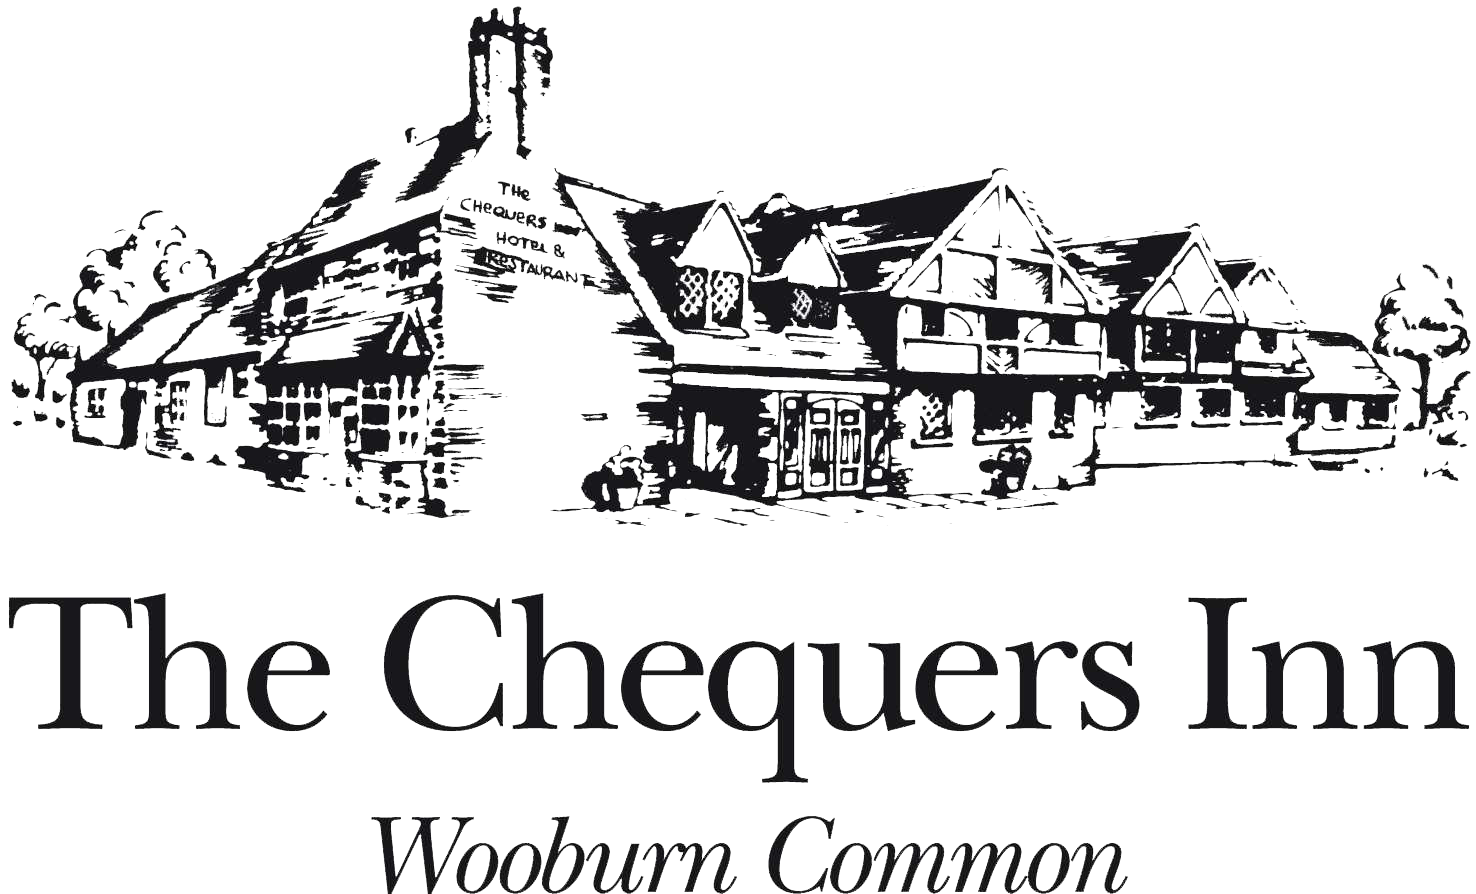 CHEQUERS INN AT WOOBURN.